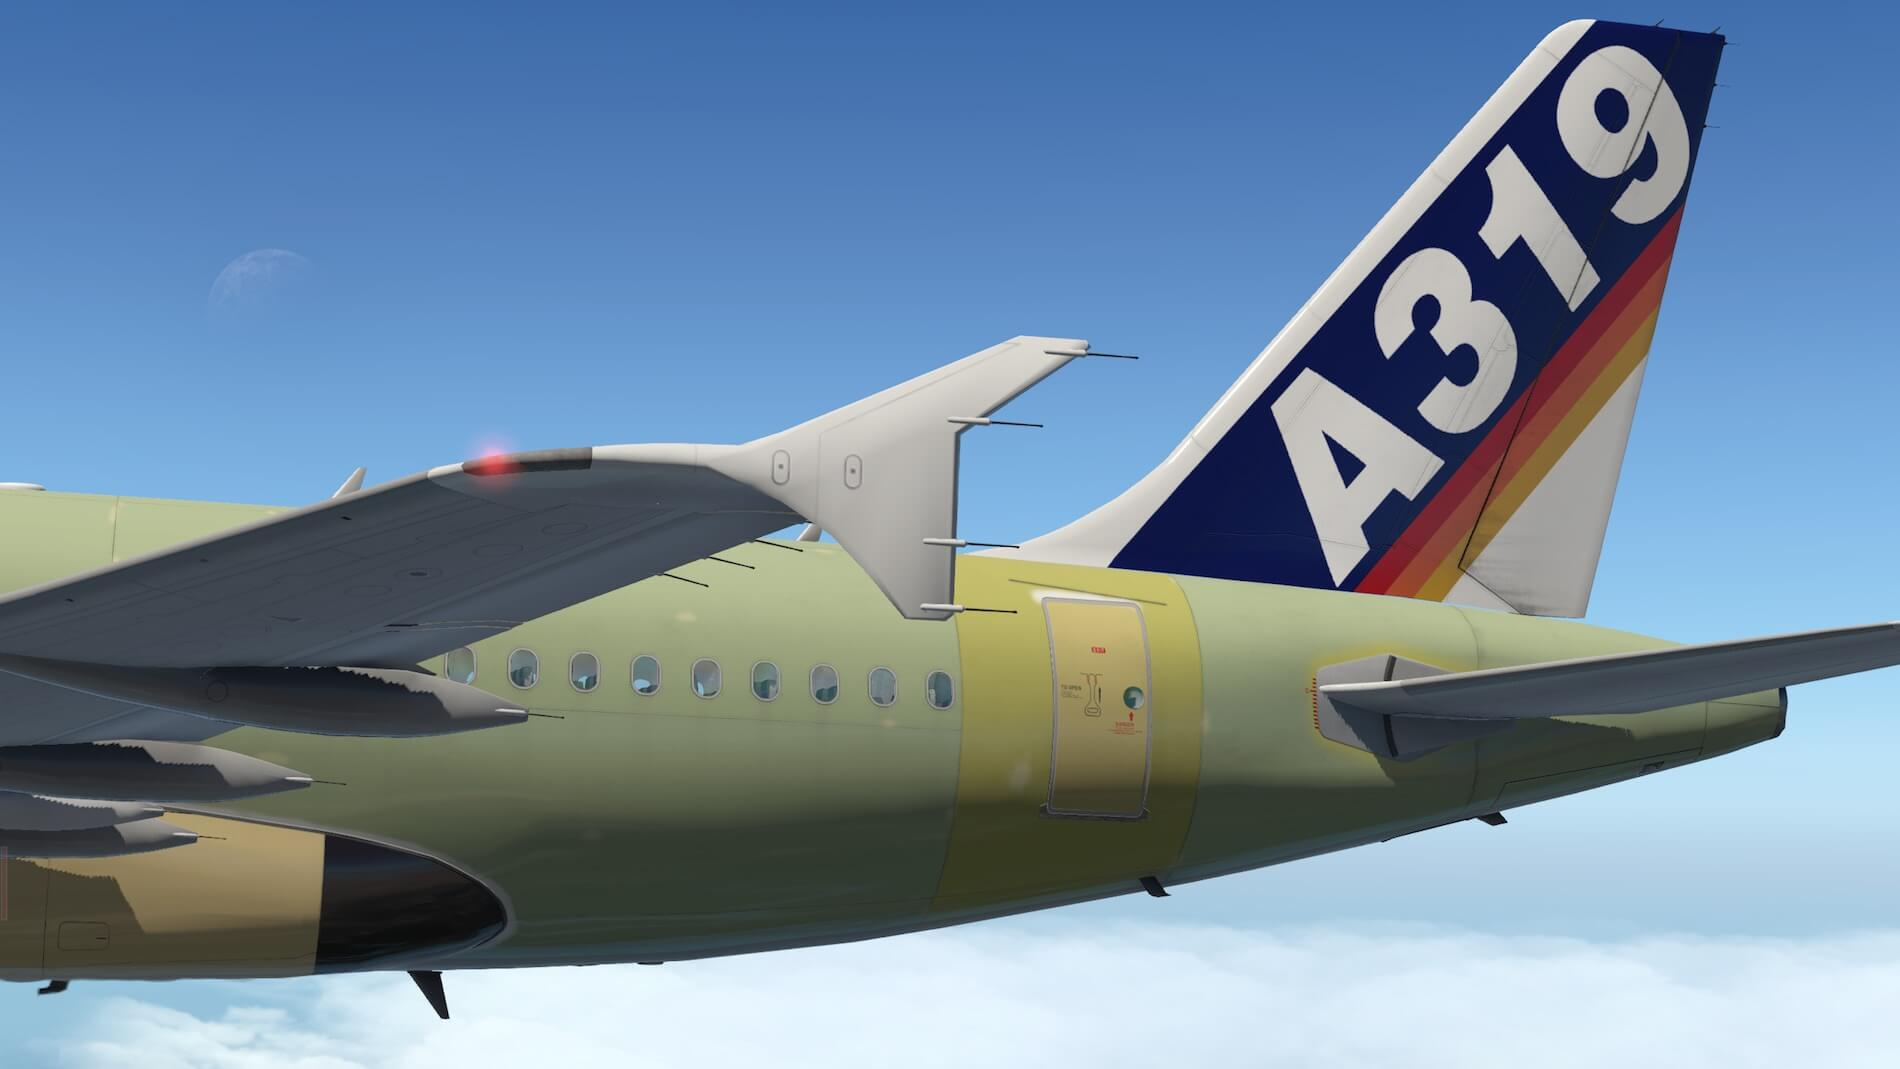 Toliss A319 Vr Related Keywords & Suggestions - Toliss A319